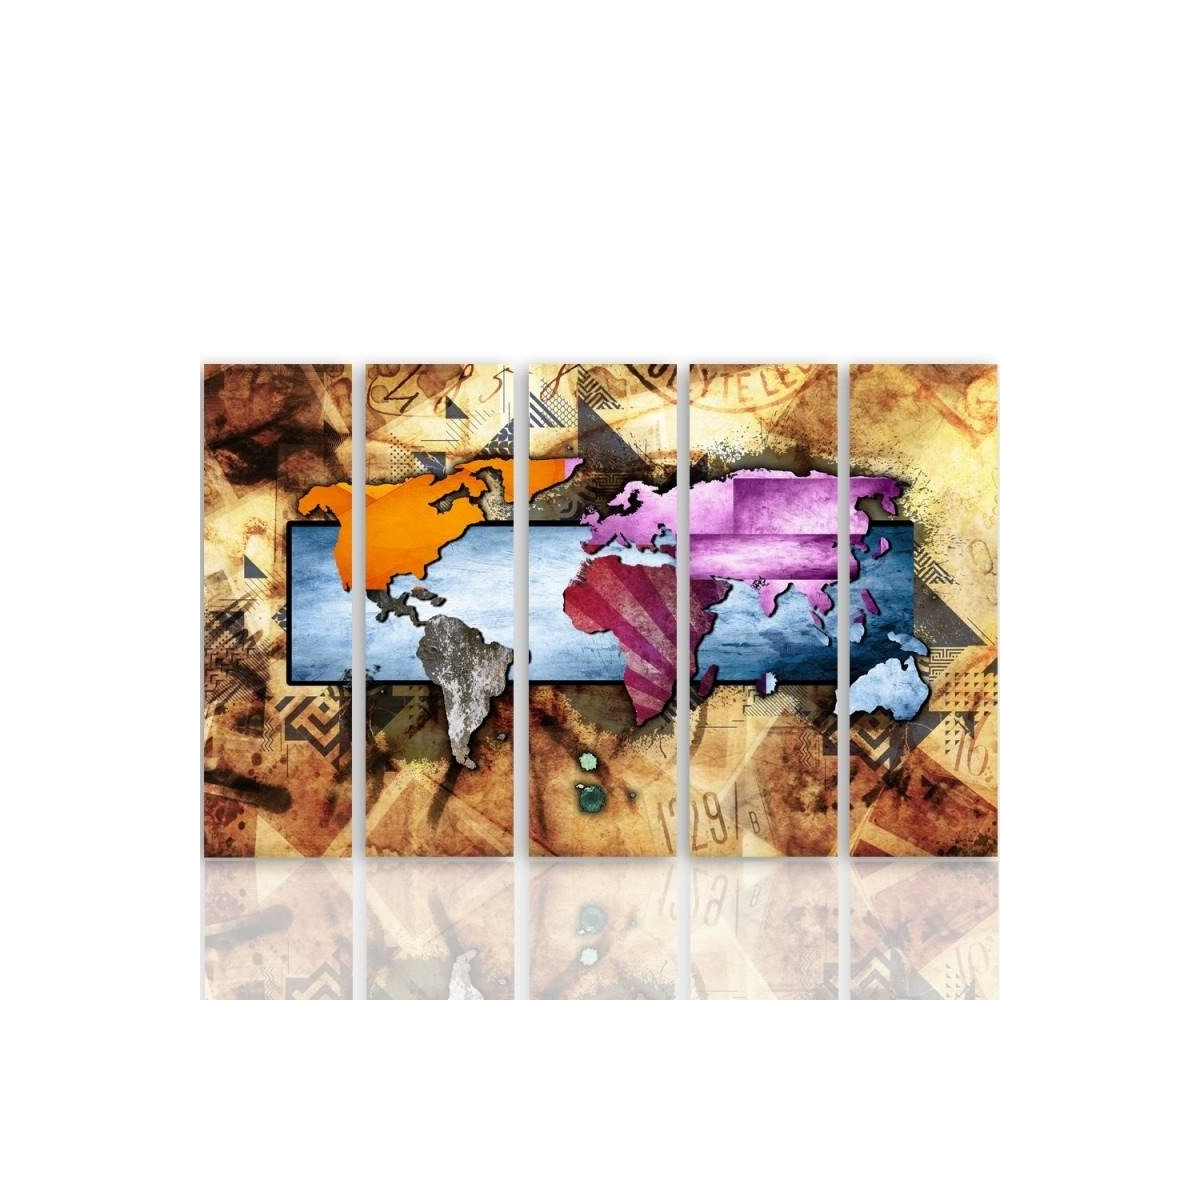 Five Part Picture On Canvas, Pentaptych, Type C, With A World Map Composition 6 100x150